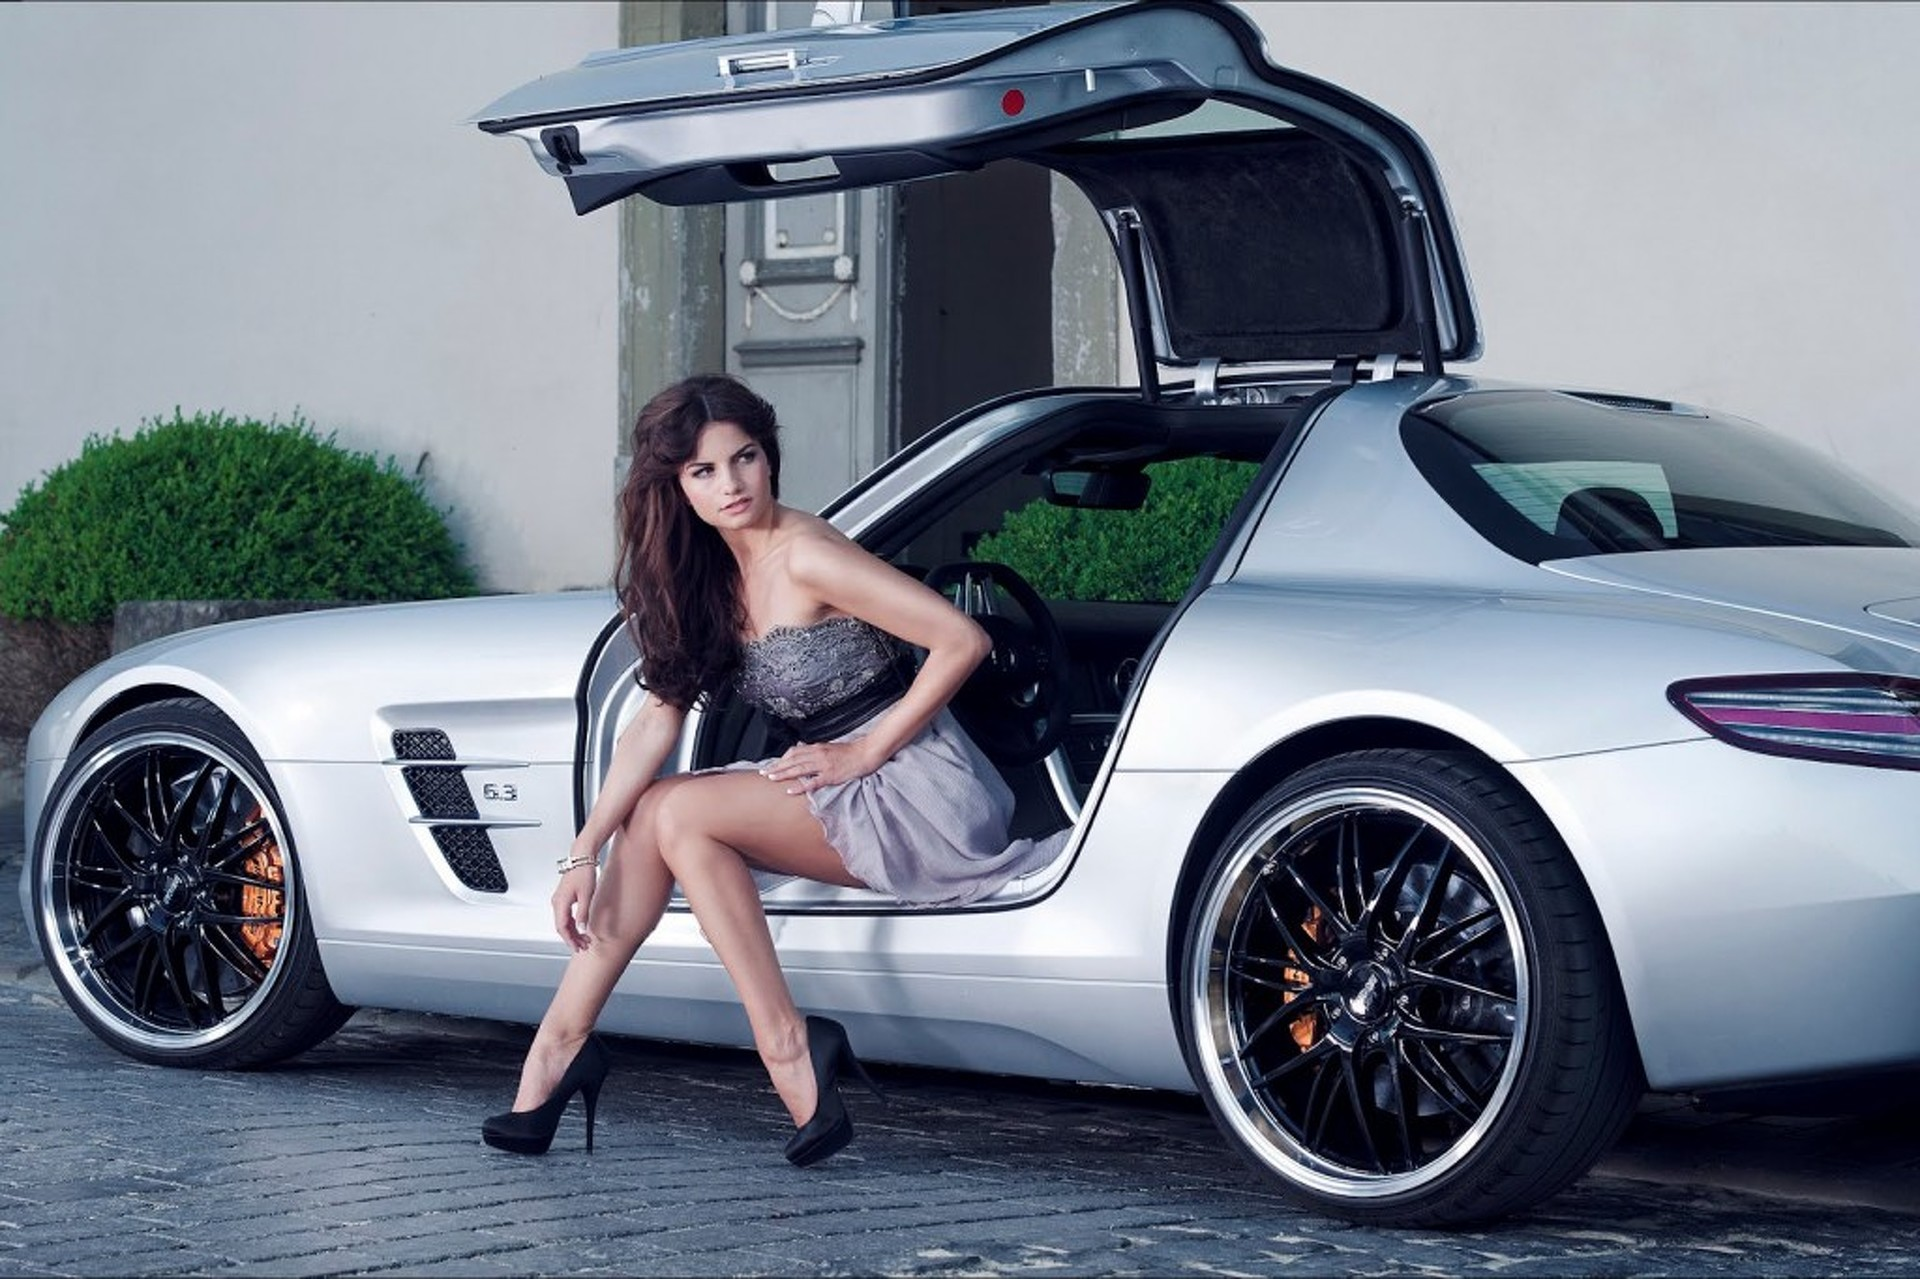 Inden Puts A Hot Girl In An Even Hotter Sls Amg-9954